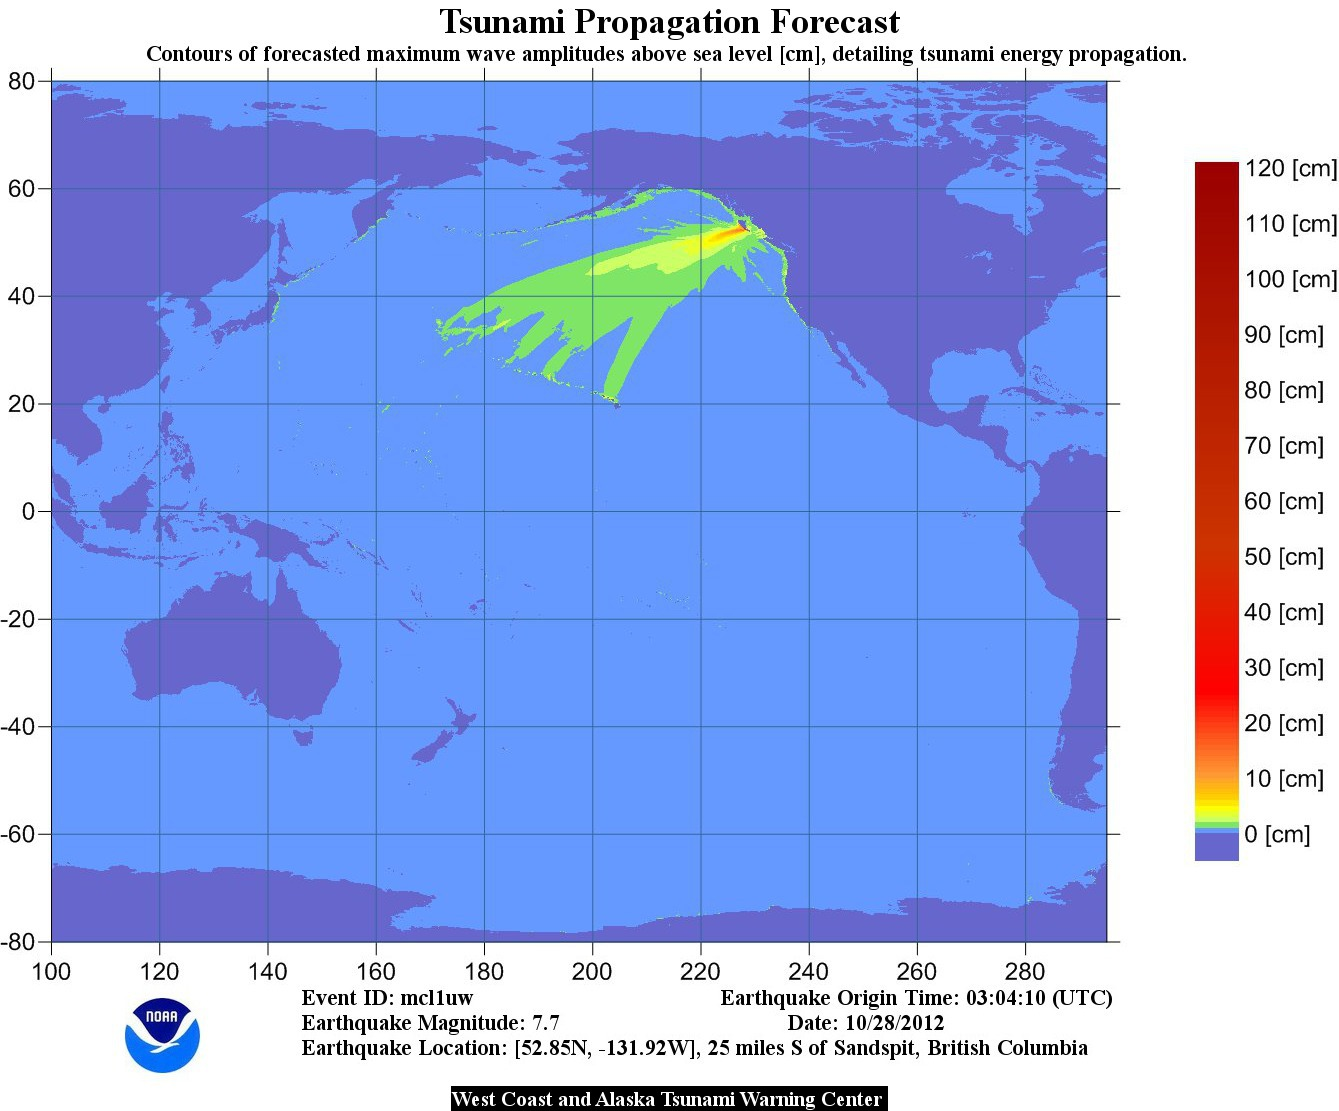 Tsunami Propogation Chart - October 28, 2012. Earthquakes from Haida Gwaii.